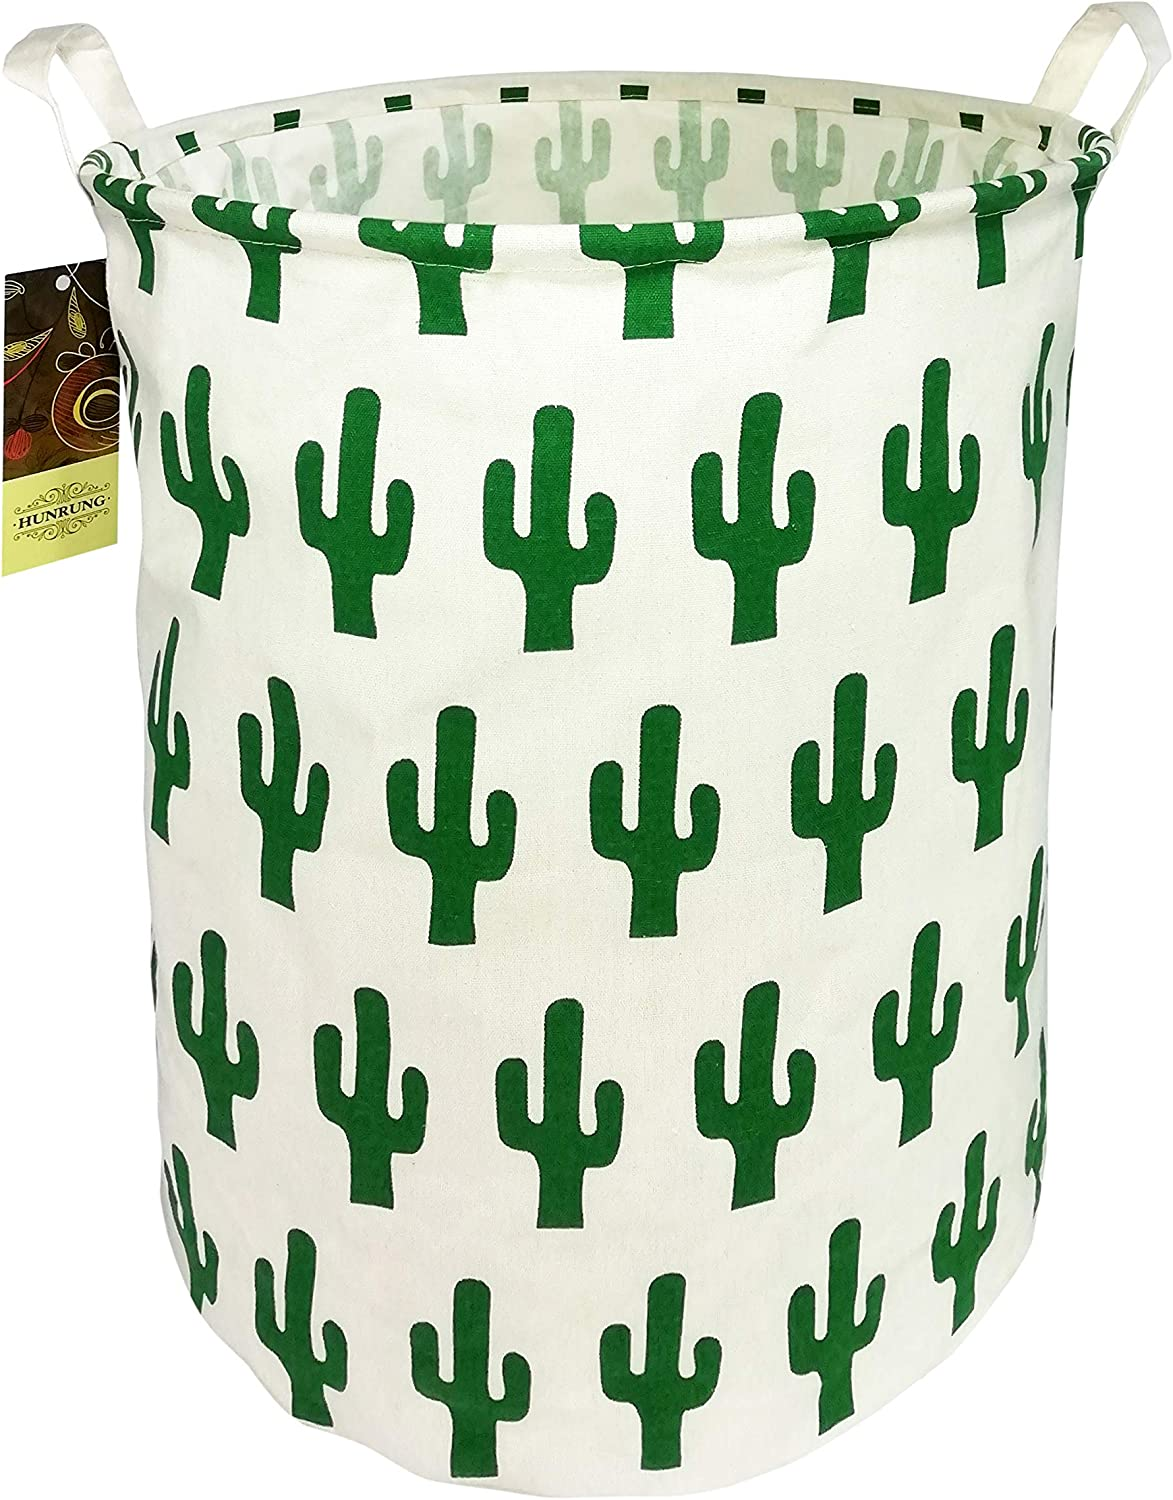 HUNRUNG Large Canvas Fabric Lightweight Storage Basket/Toy Organizer/Dirty Clothes Collapsible Waterproof for College Dorms, Kids Bedroom,Bathroom,Laundry Hamper (Green Cactus)